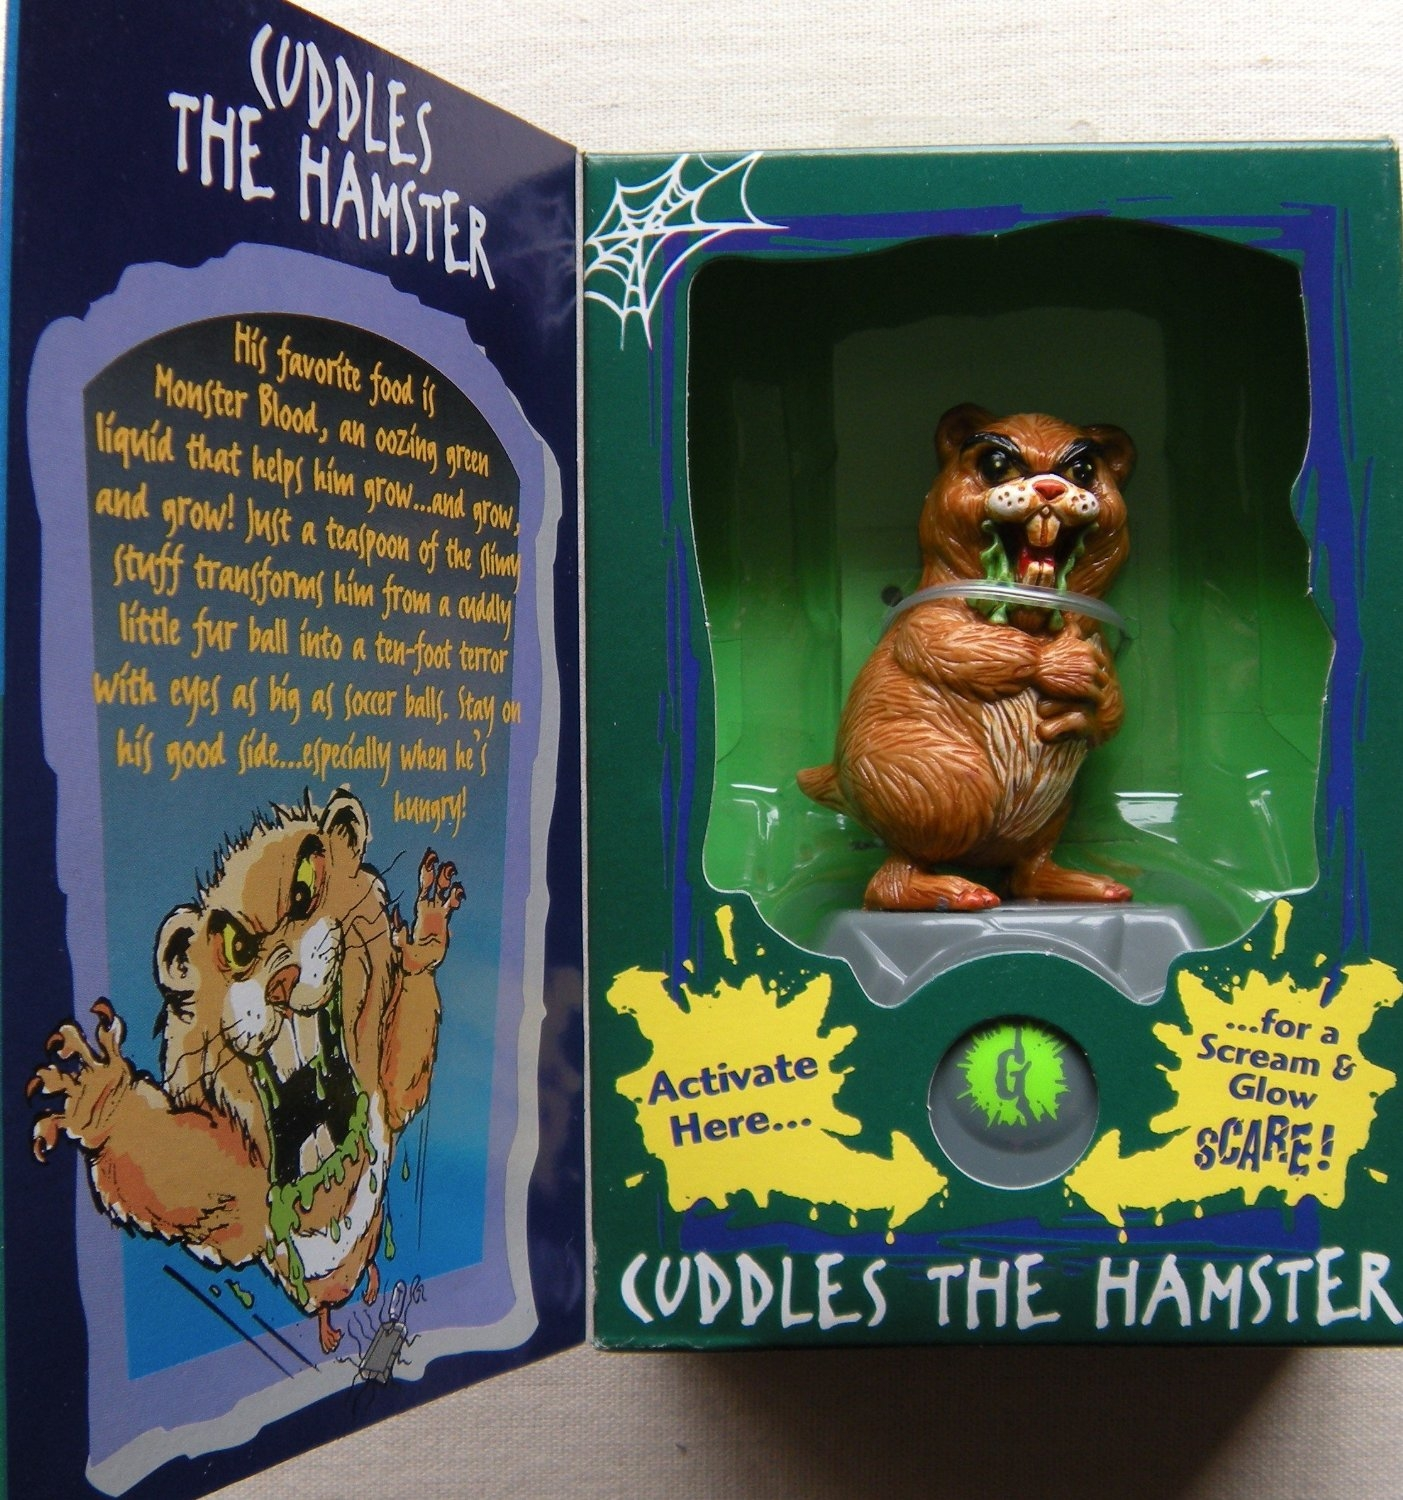 goosebumps coloring pages - File Cuddles the hamster action figure box